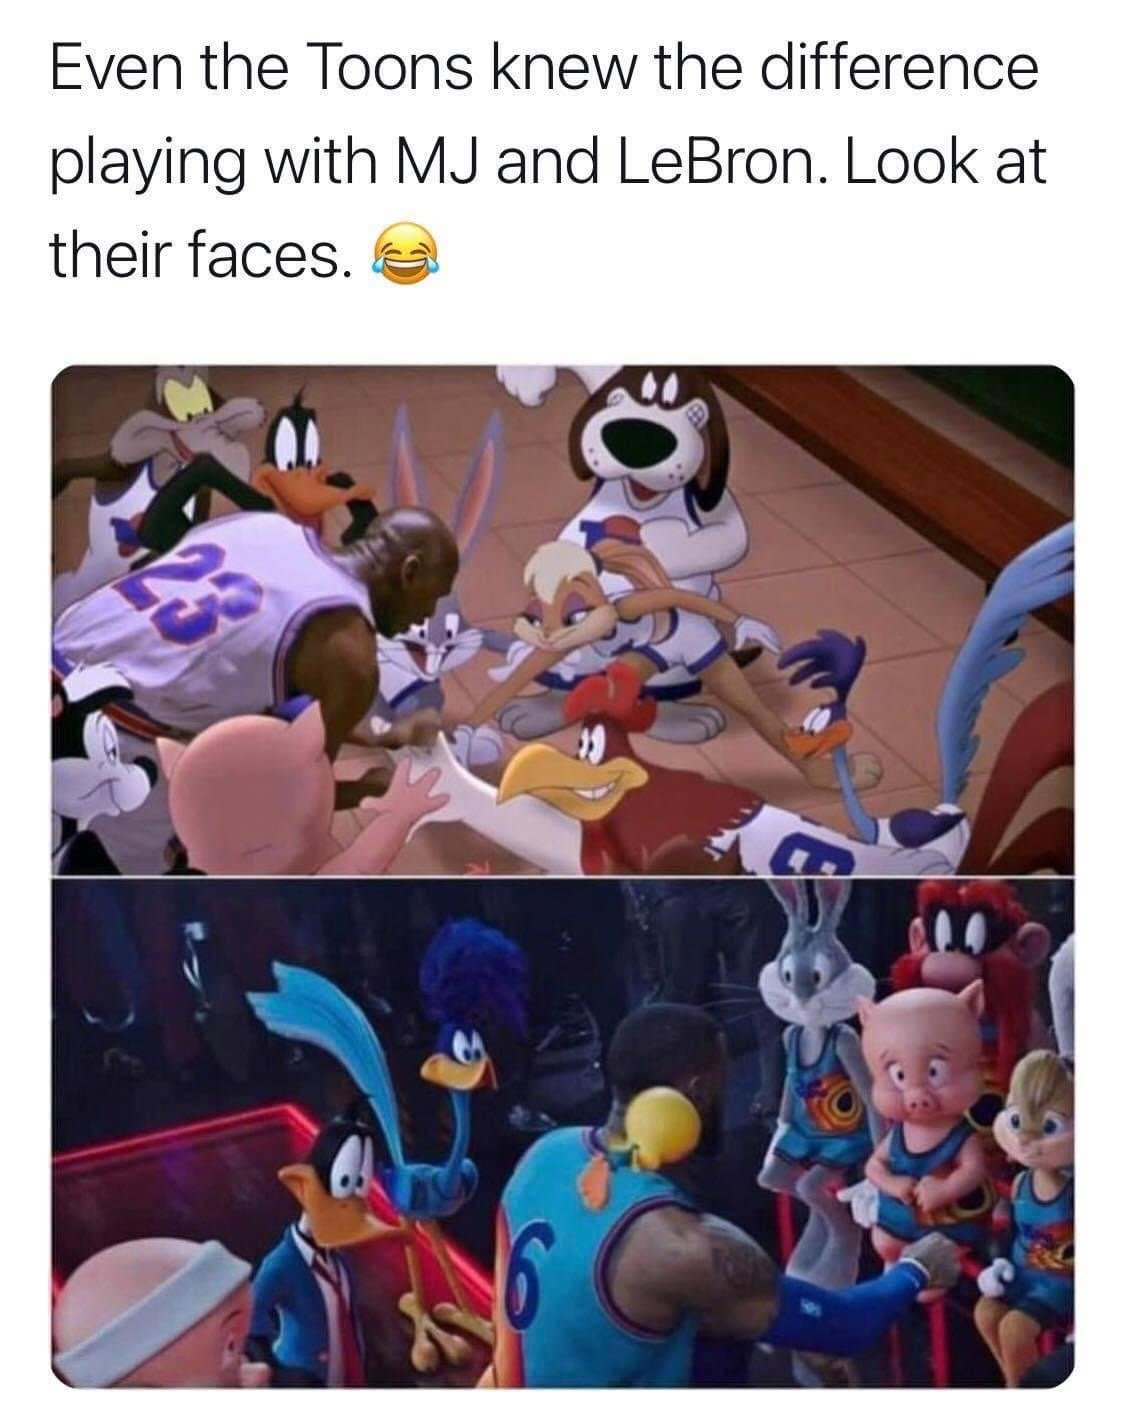 Even the Toon knew the difference playing with MJ and LeBron. Look at their faces Space Jam meme